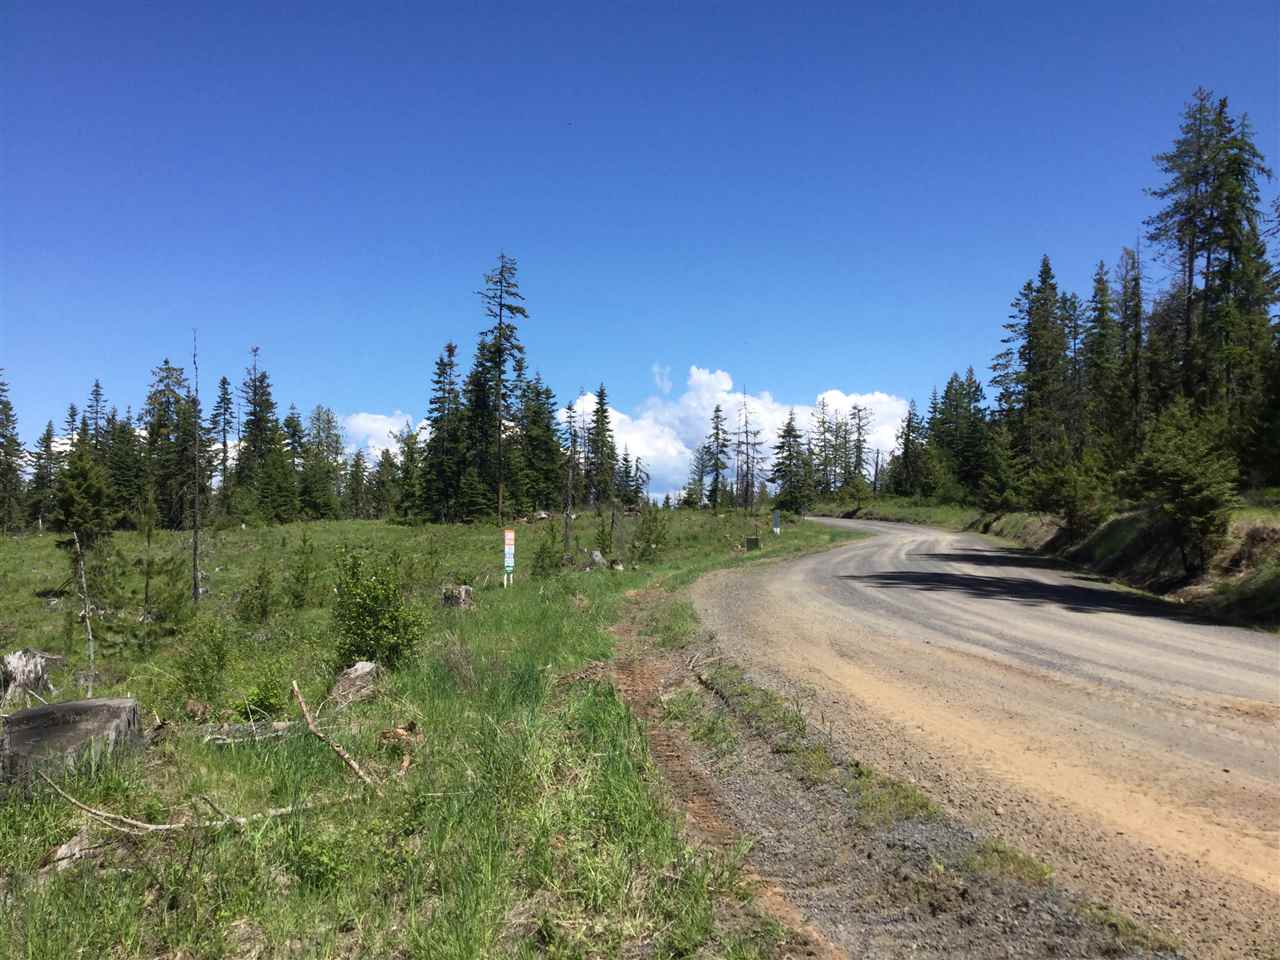 Recreational Property for Sale at TBD Bandmill D TBD Bandmill D Orofino, Idaho 83544